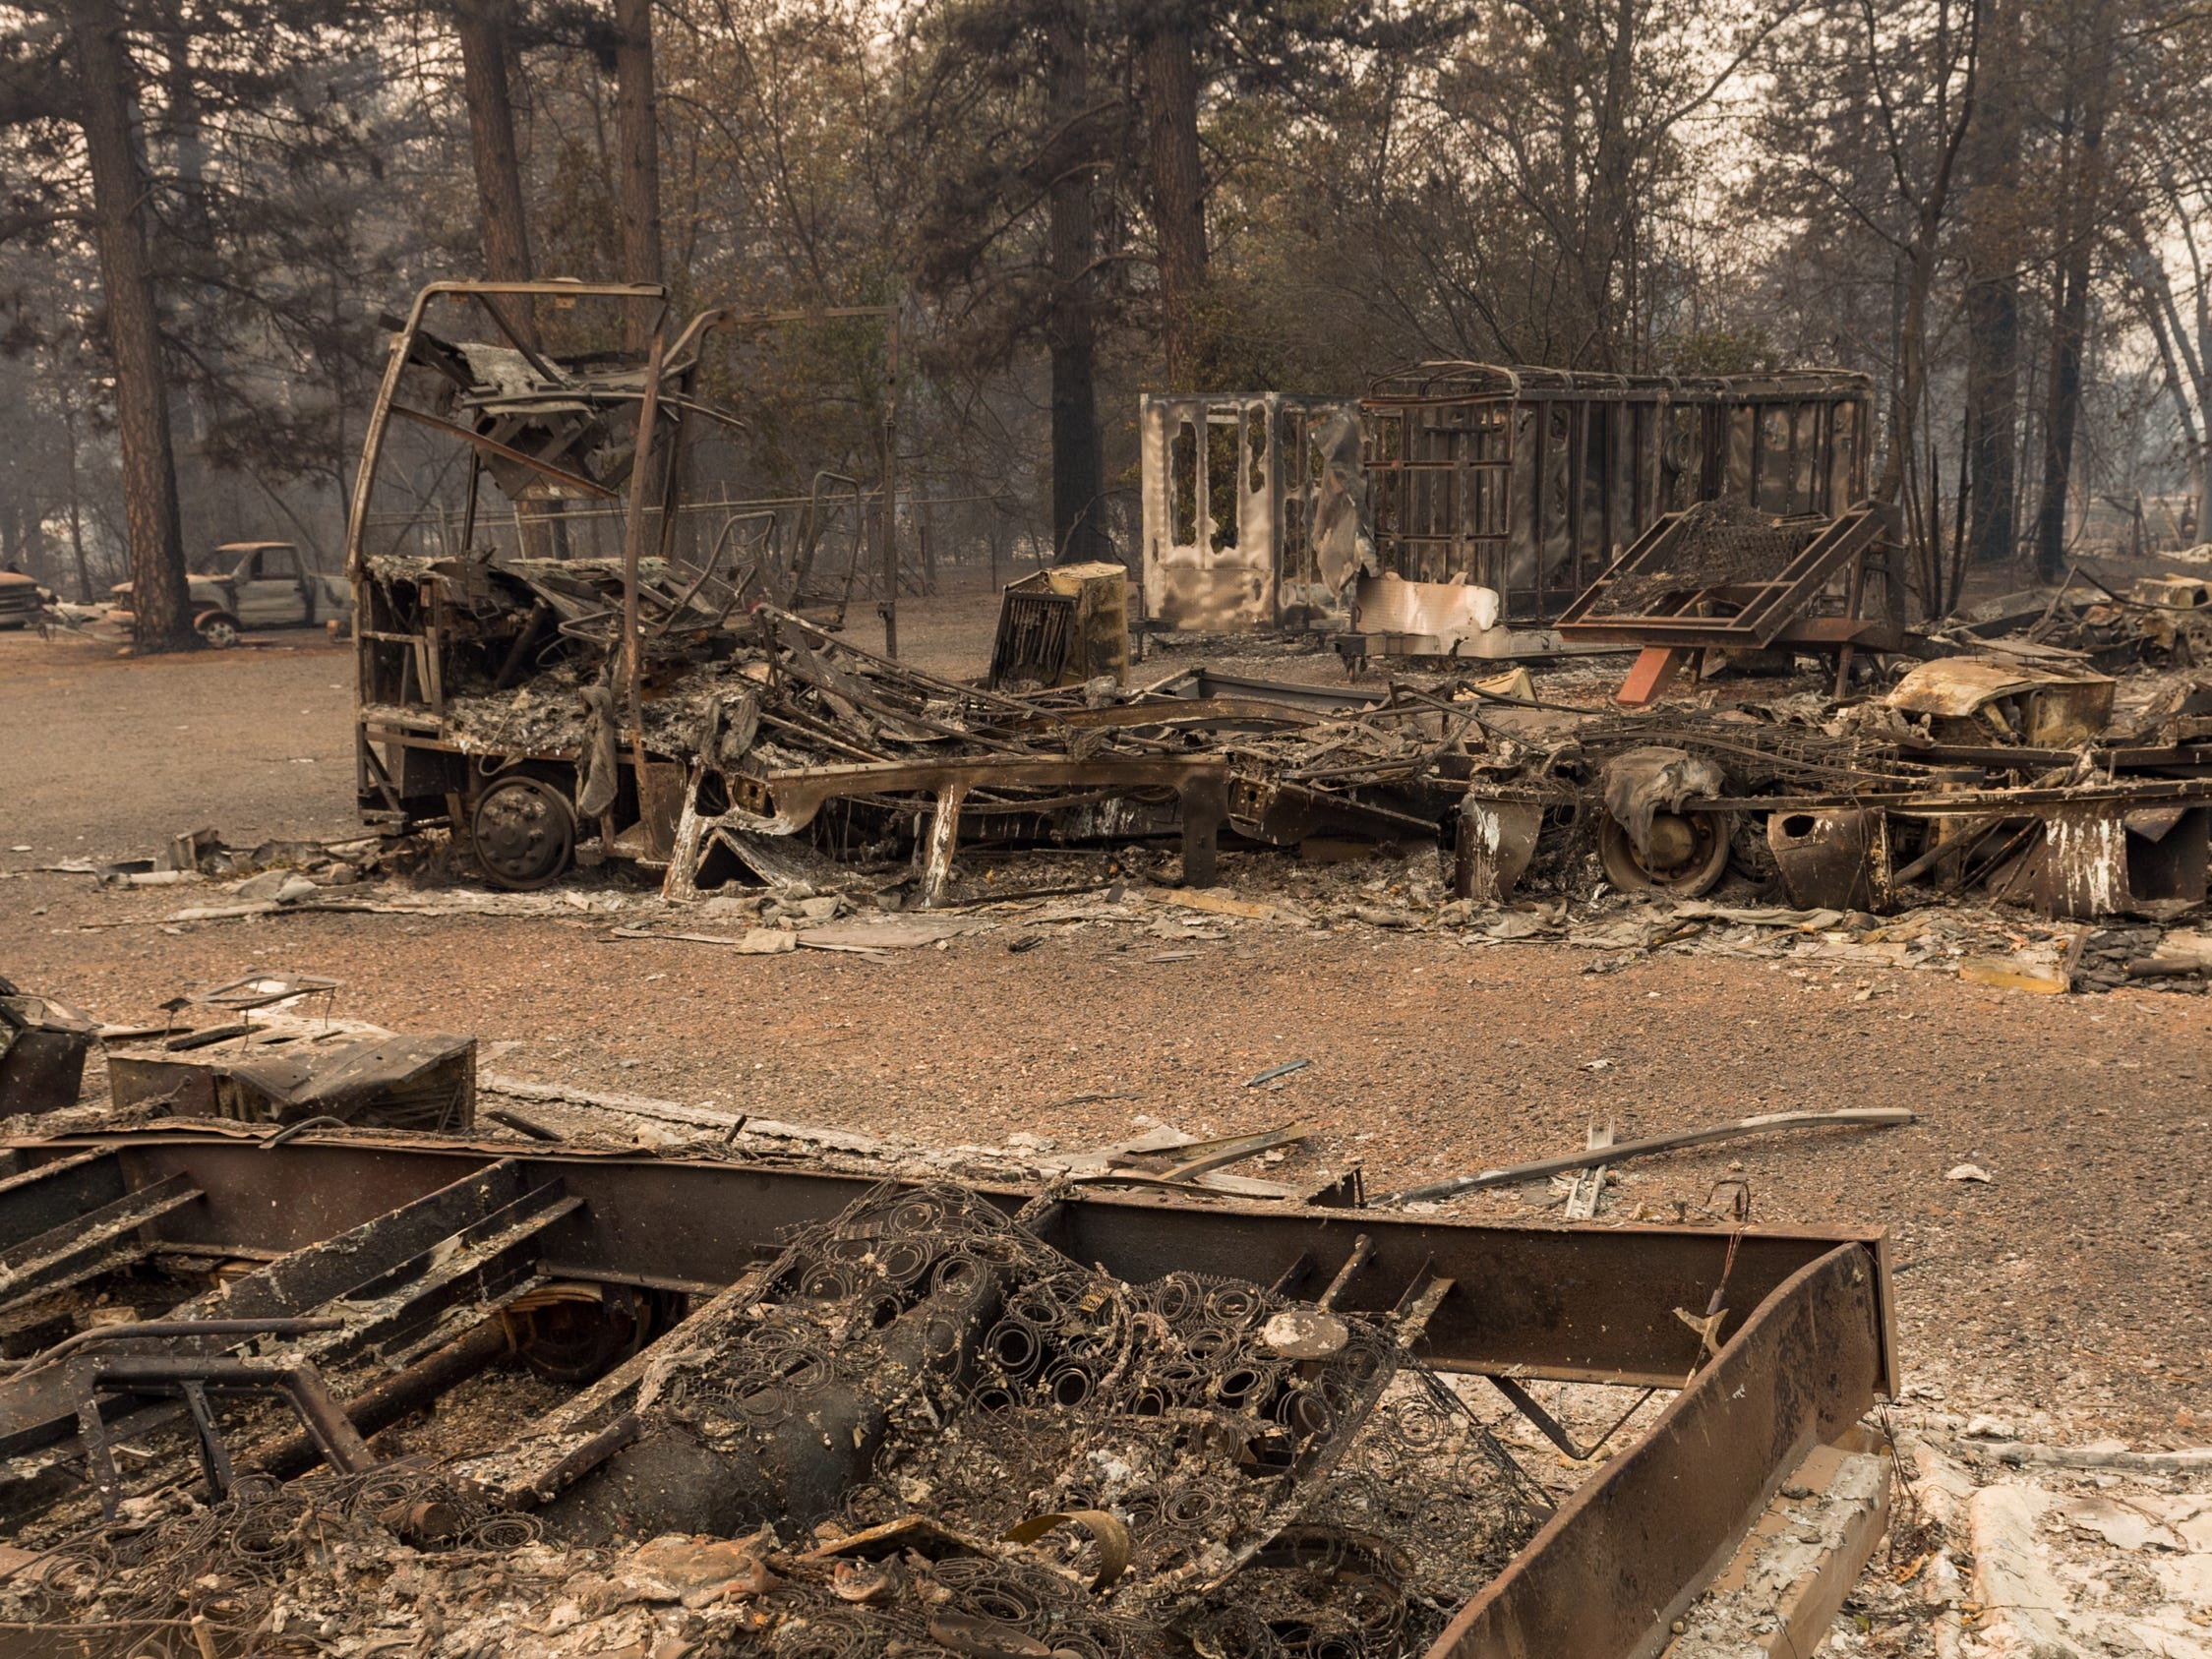 The Camp Fire swept through Paradise, CA destroying more than 6,500 structures and the death toll has risen to 23.  November 11, 2018